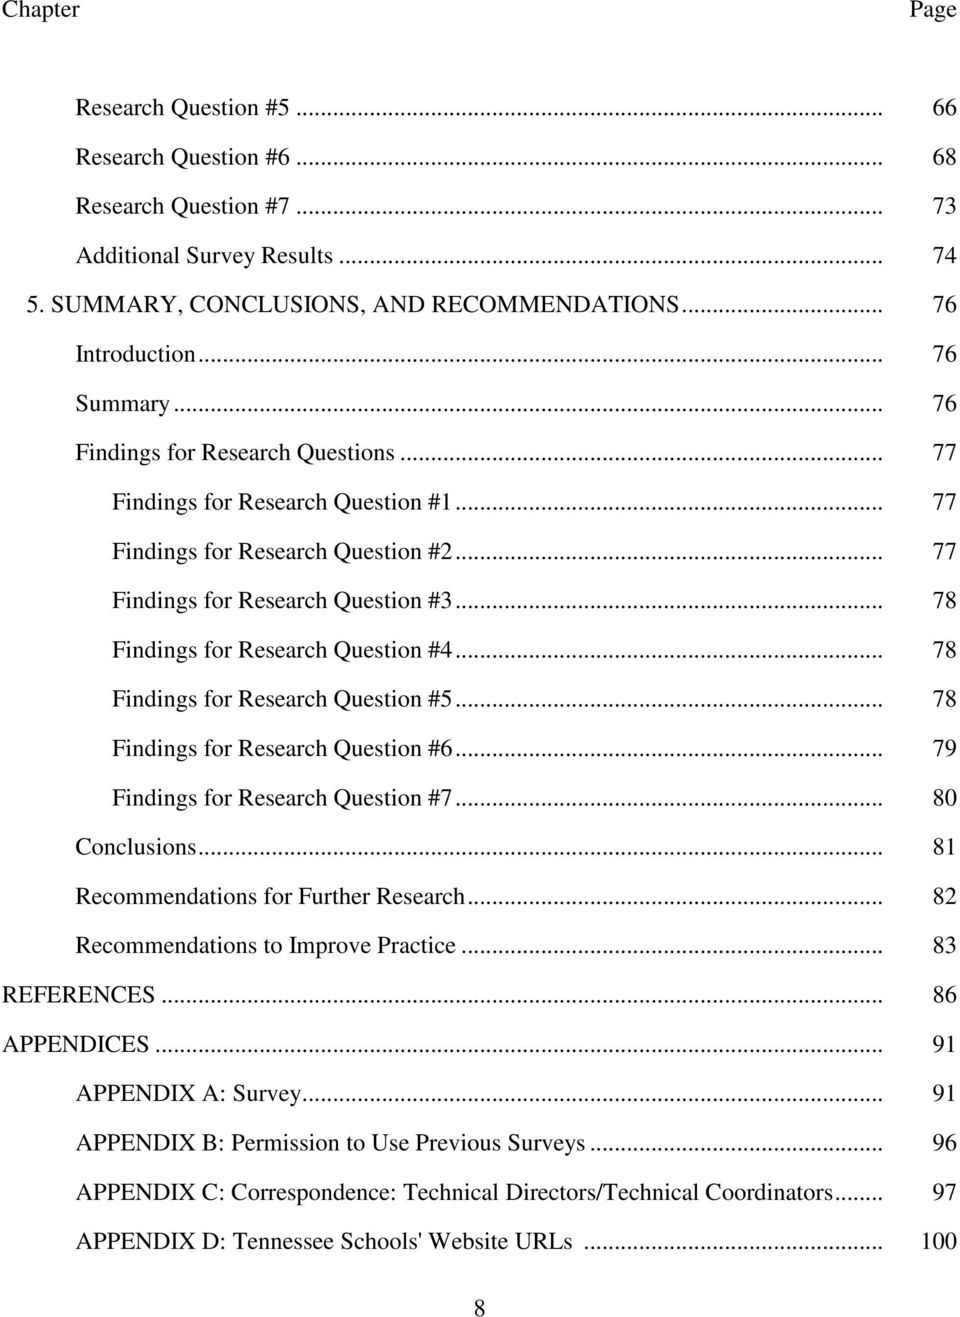 .. 78 Findings for Research Question #4... 78 Findings for Research Question #5... 78 Findings for Research Question #6... 79 Findings for Research Question #7... 80 Conclusions.